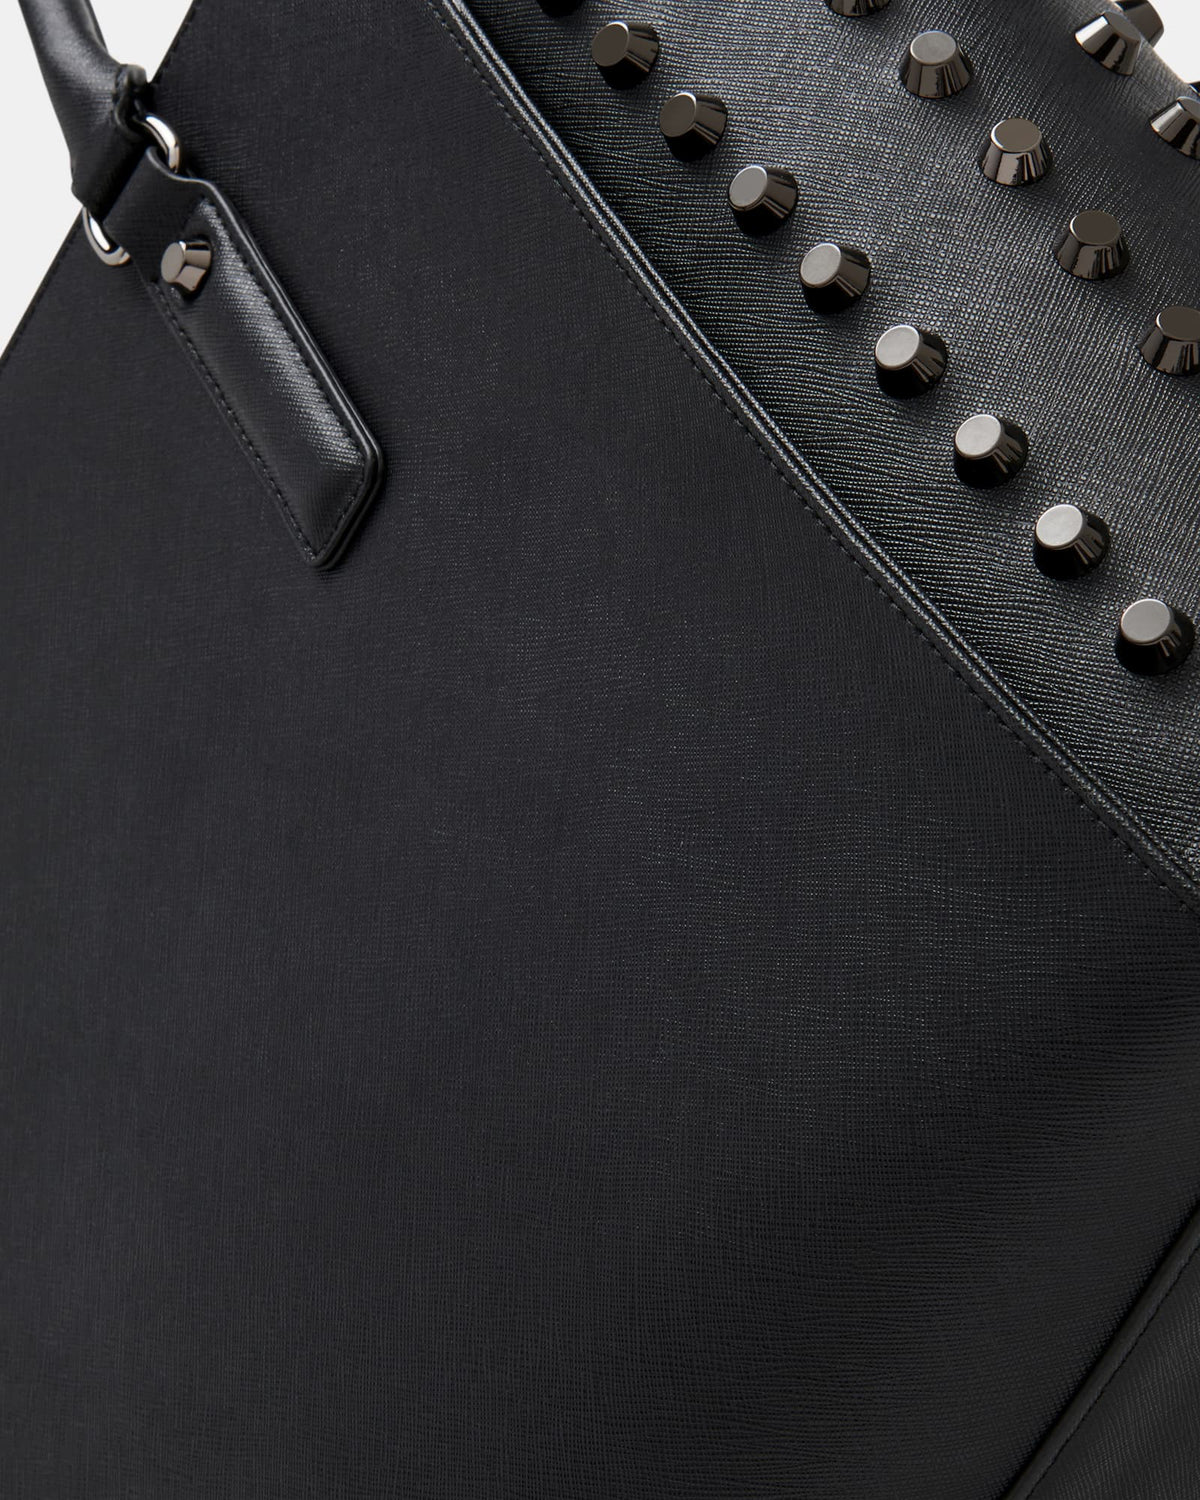 The Stud Rainmaker Tote